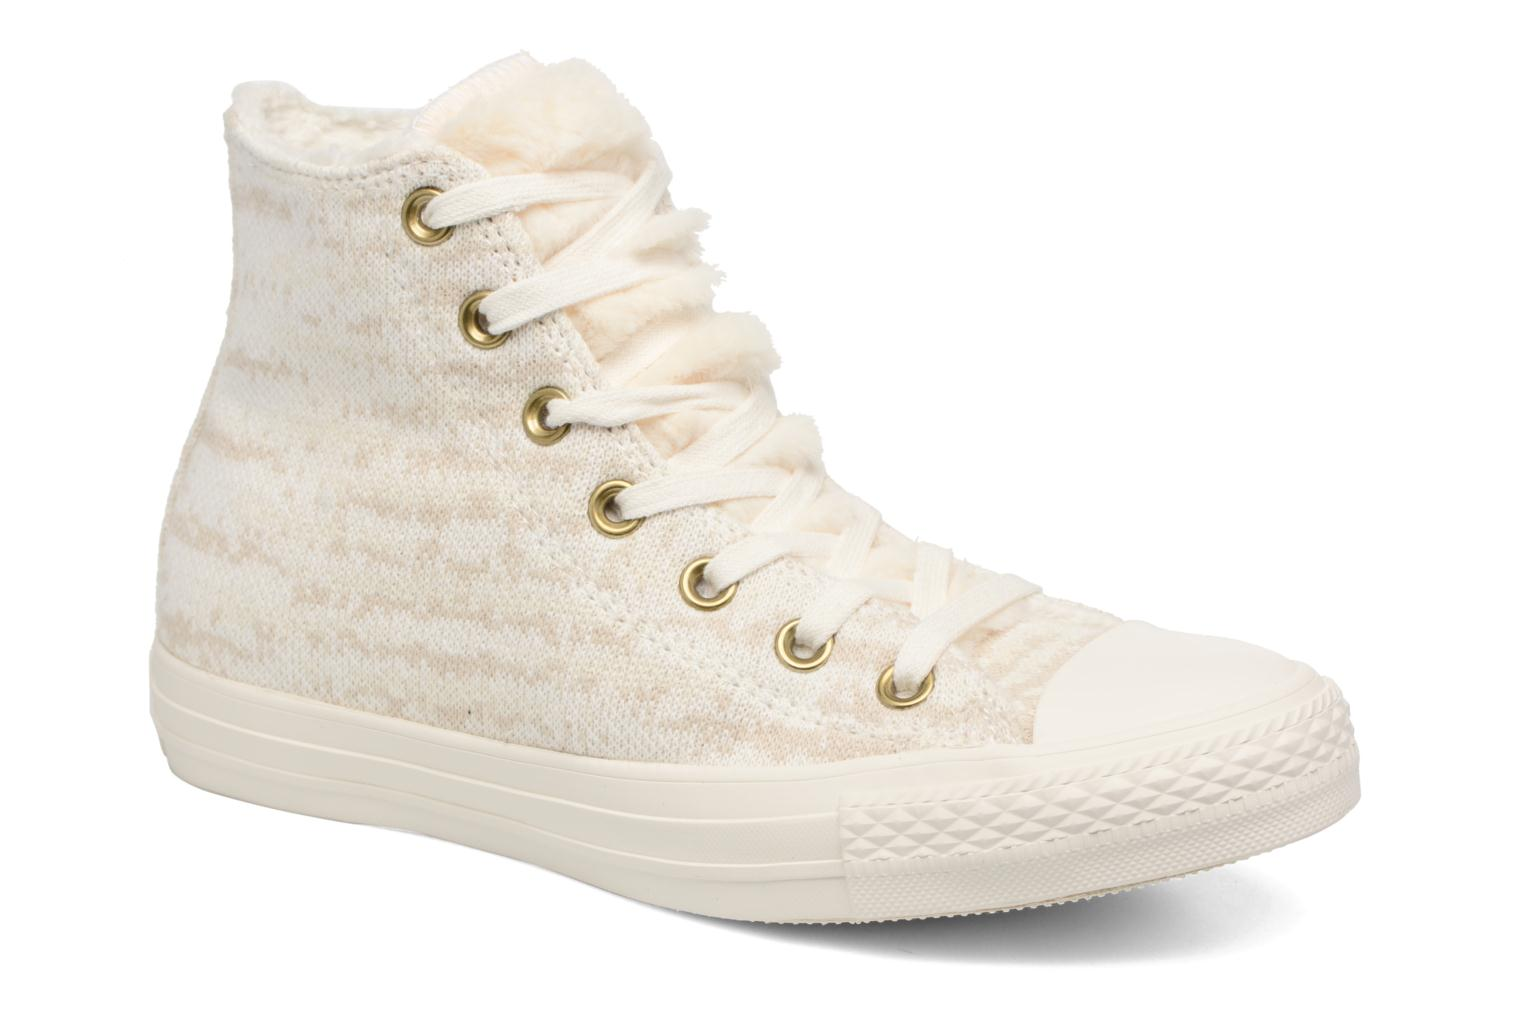 sneakers-ctas-winter-knit-fur-hi-by-converse